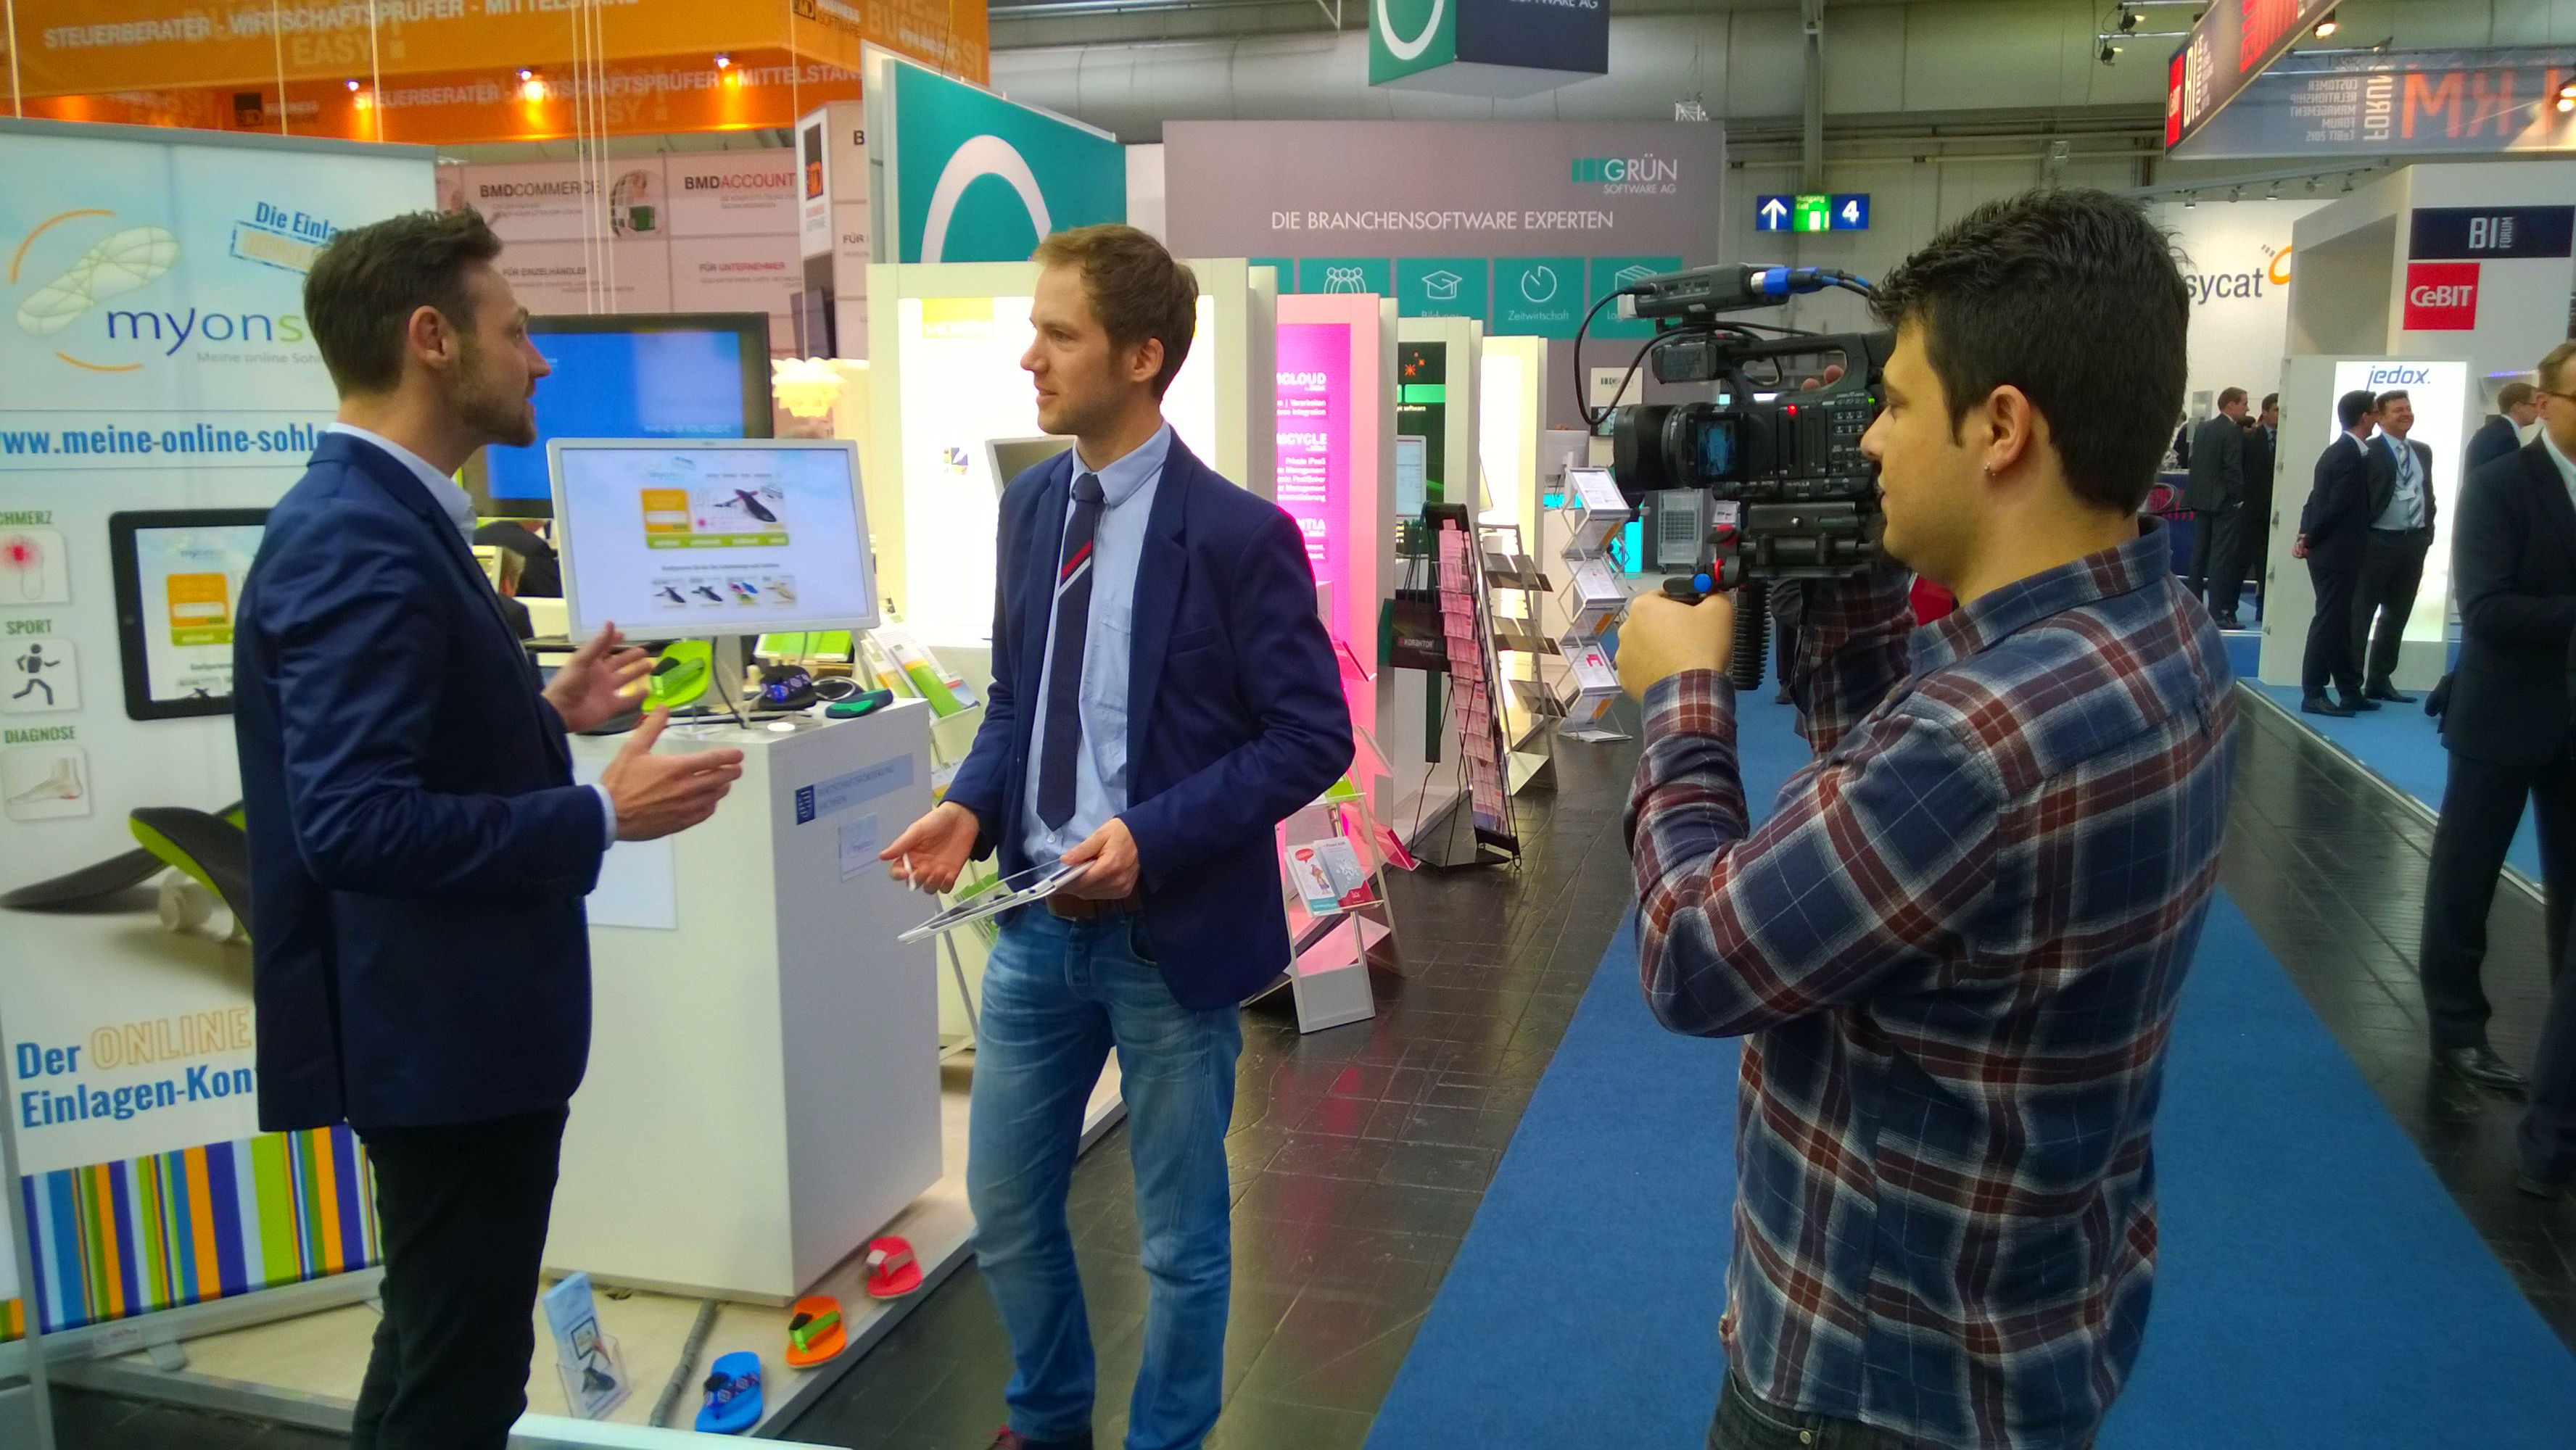 myonso interview cebit Christoph Maetzold 2